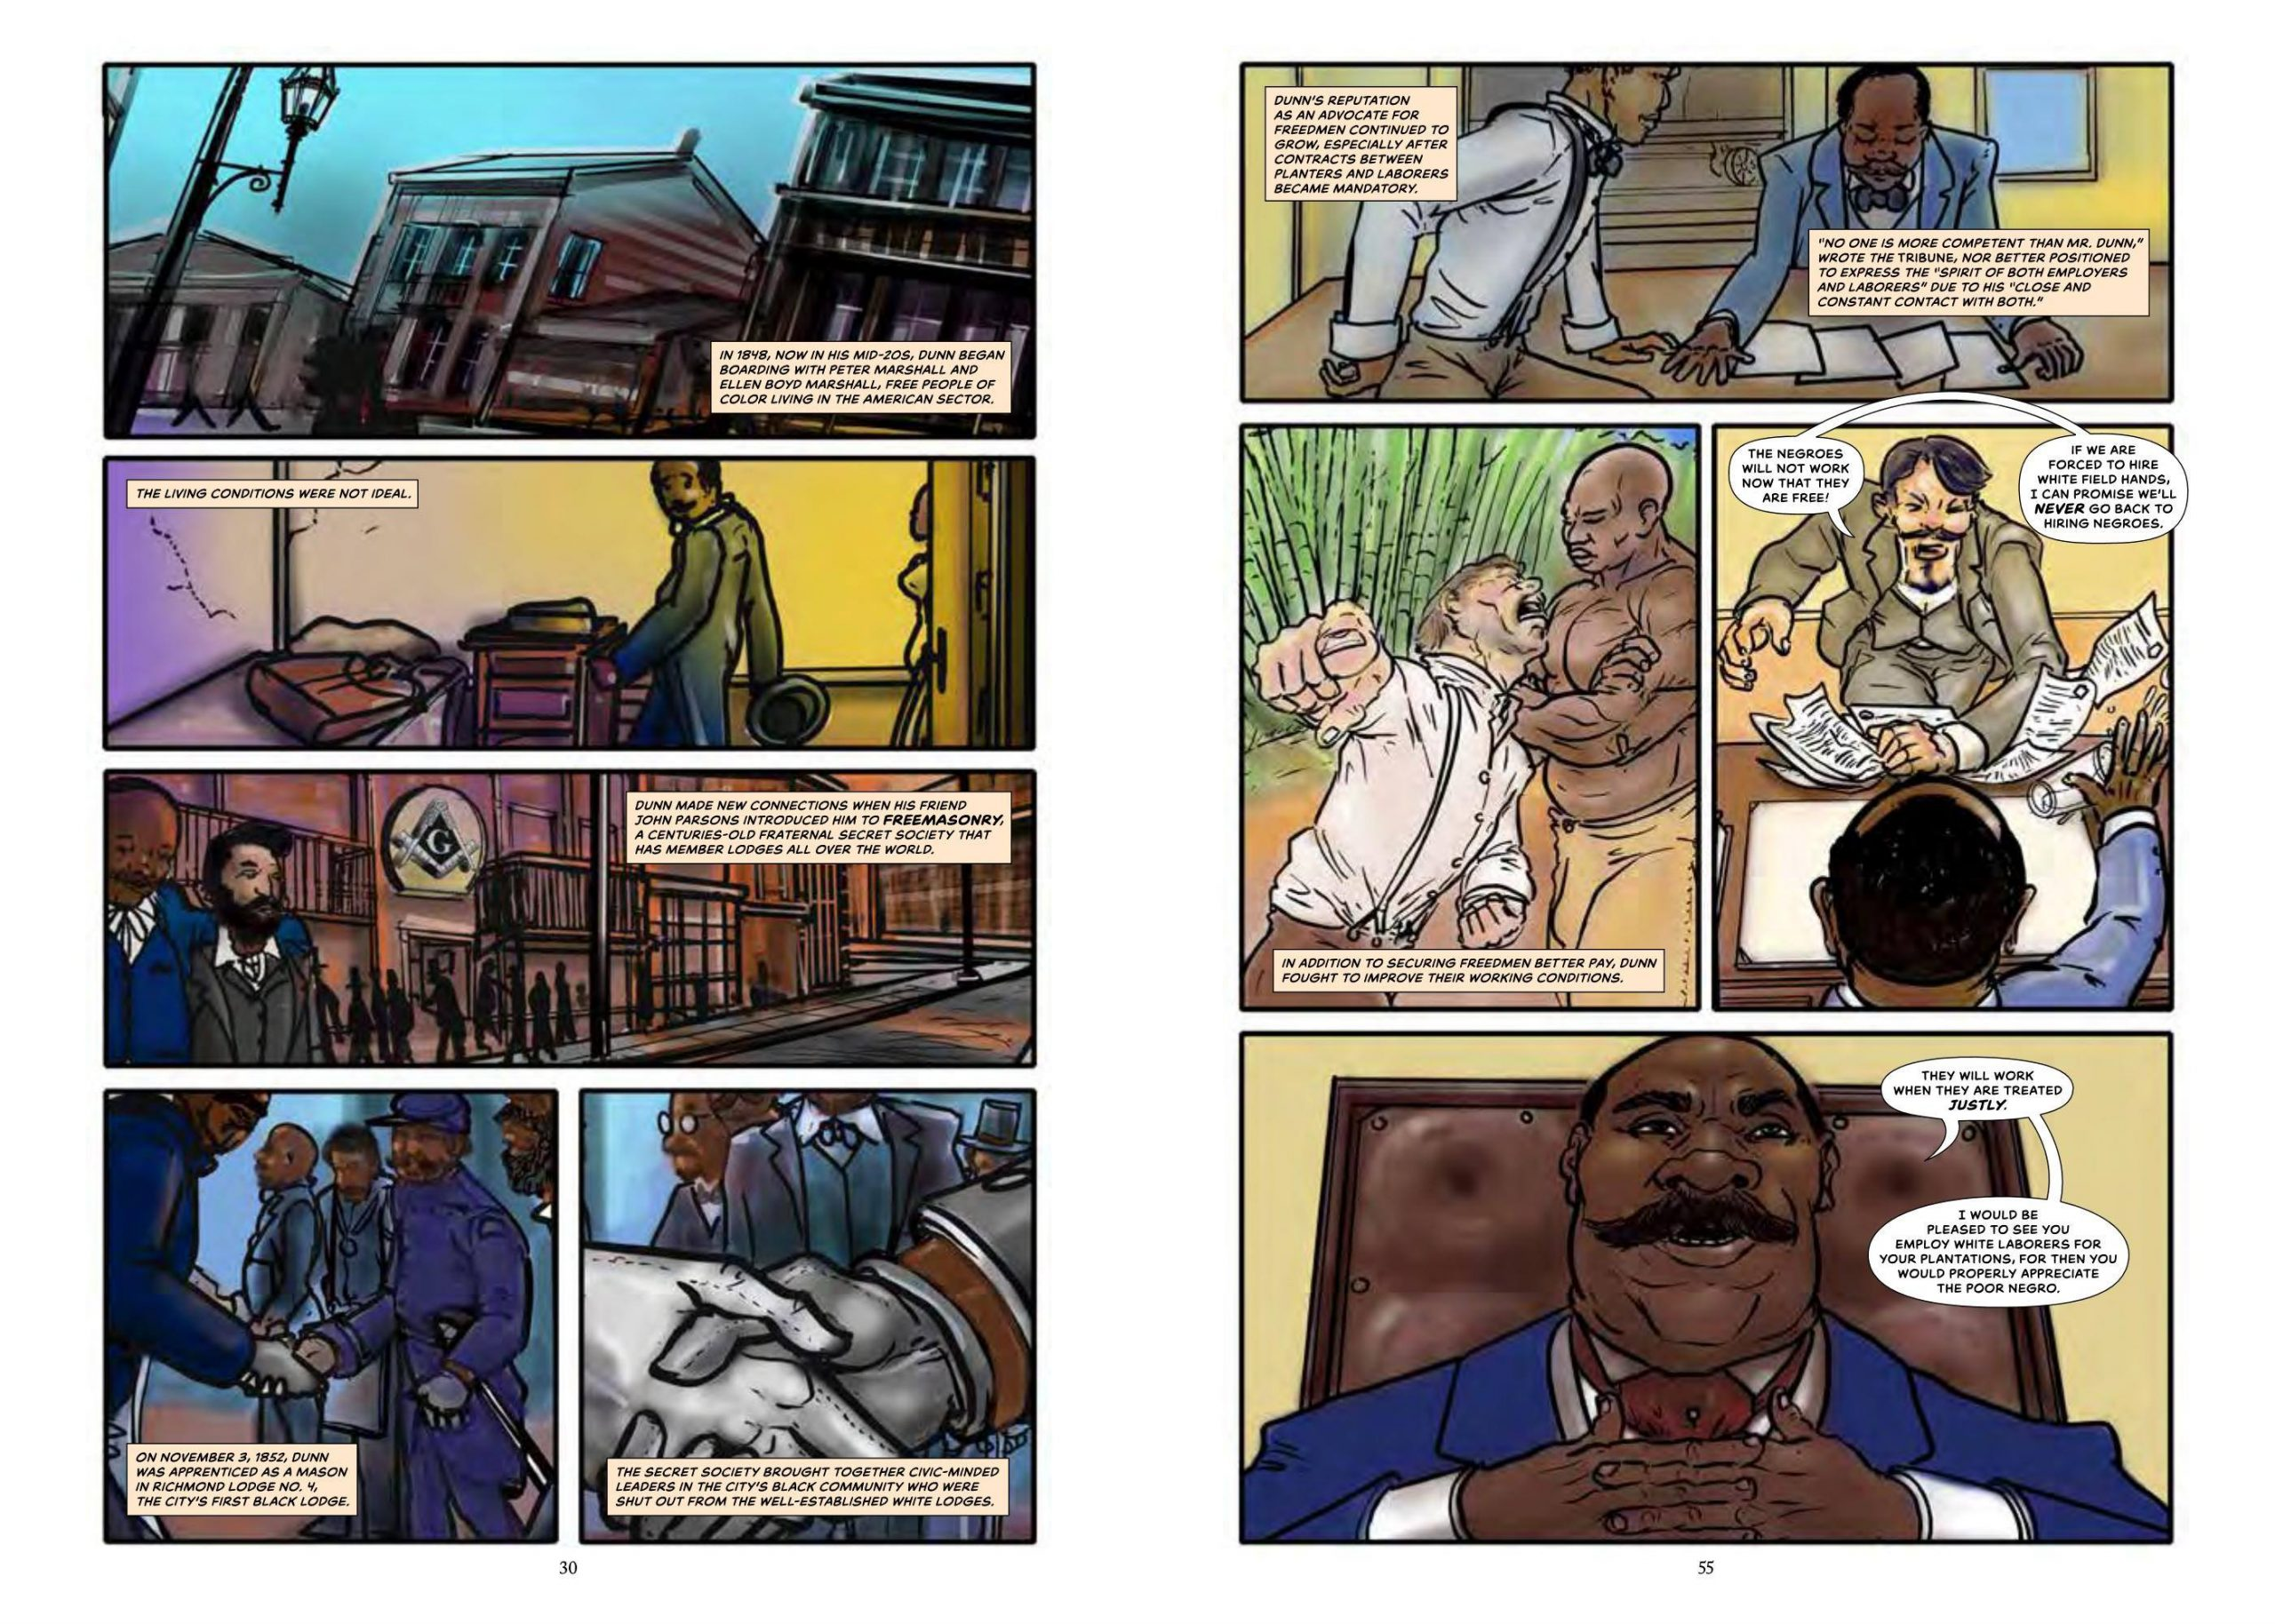 Monumental graphic novel review